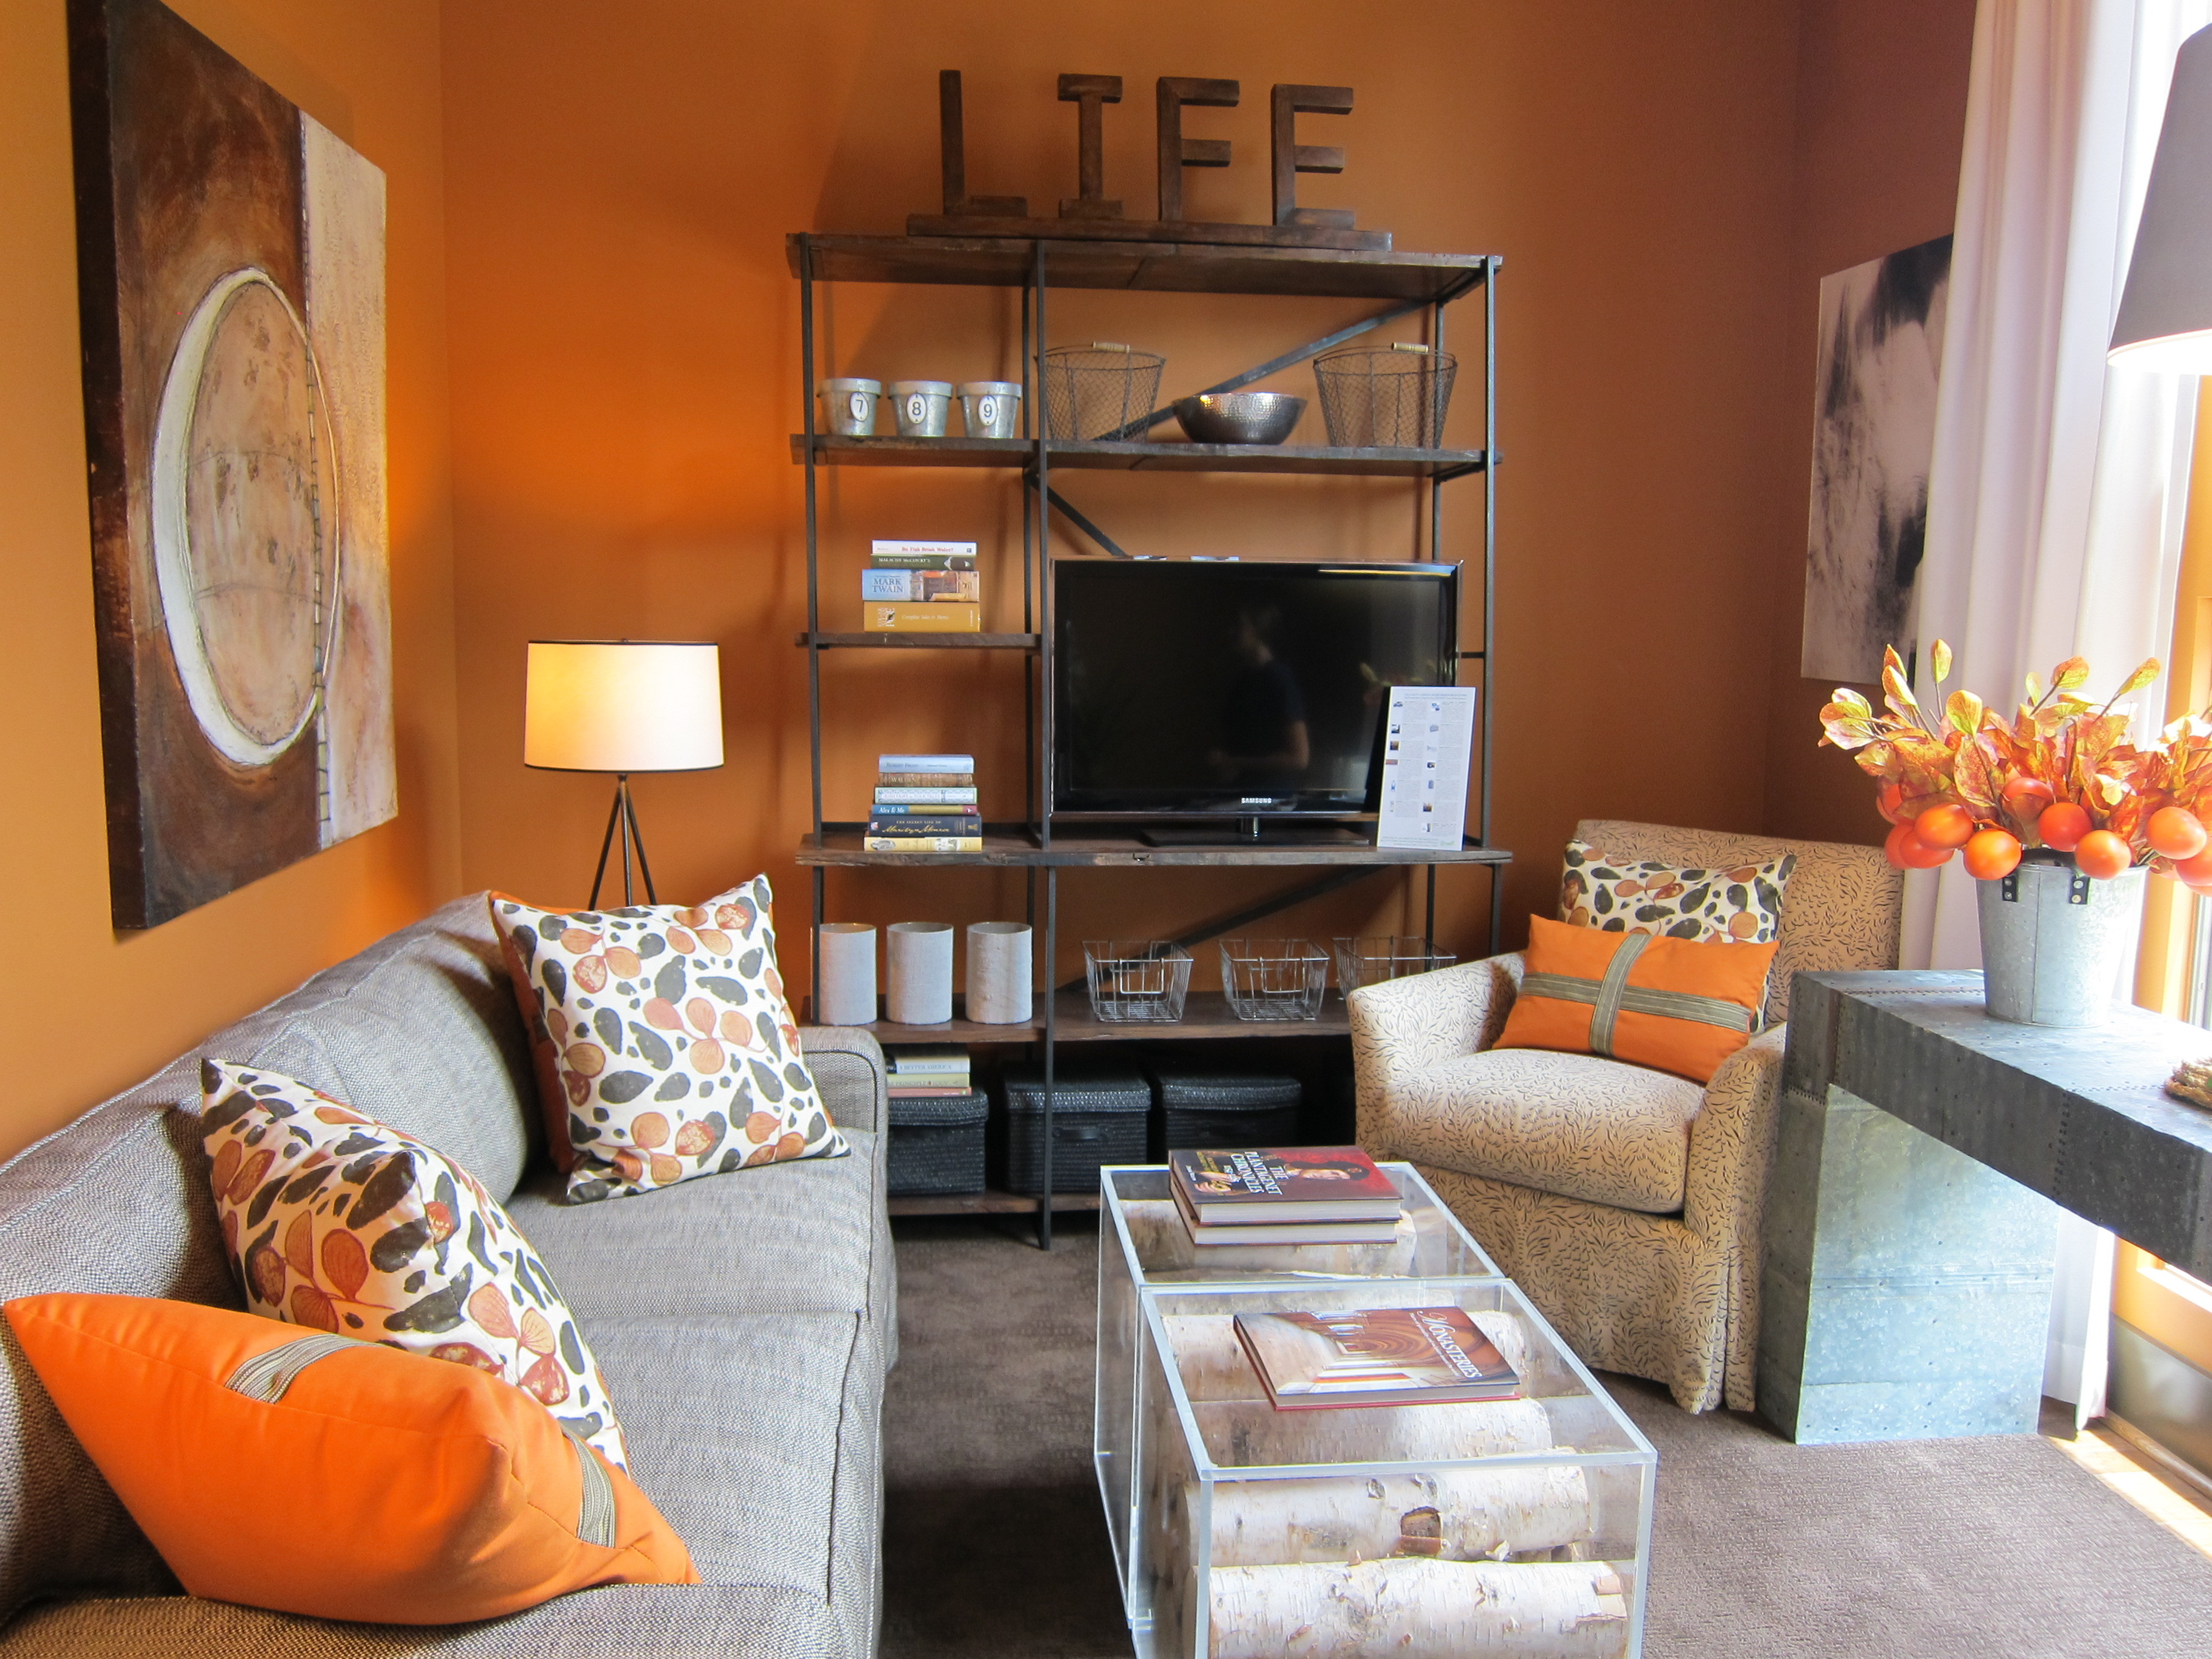 Hgtv green home in serenbe ga escape from bk - Orange walls living room ...